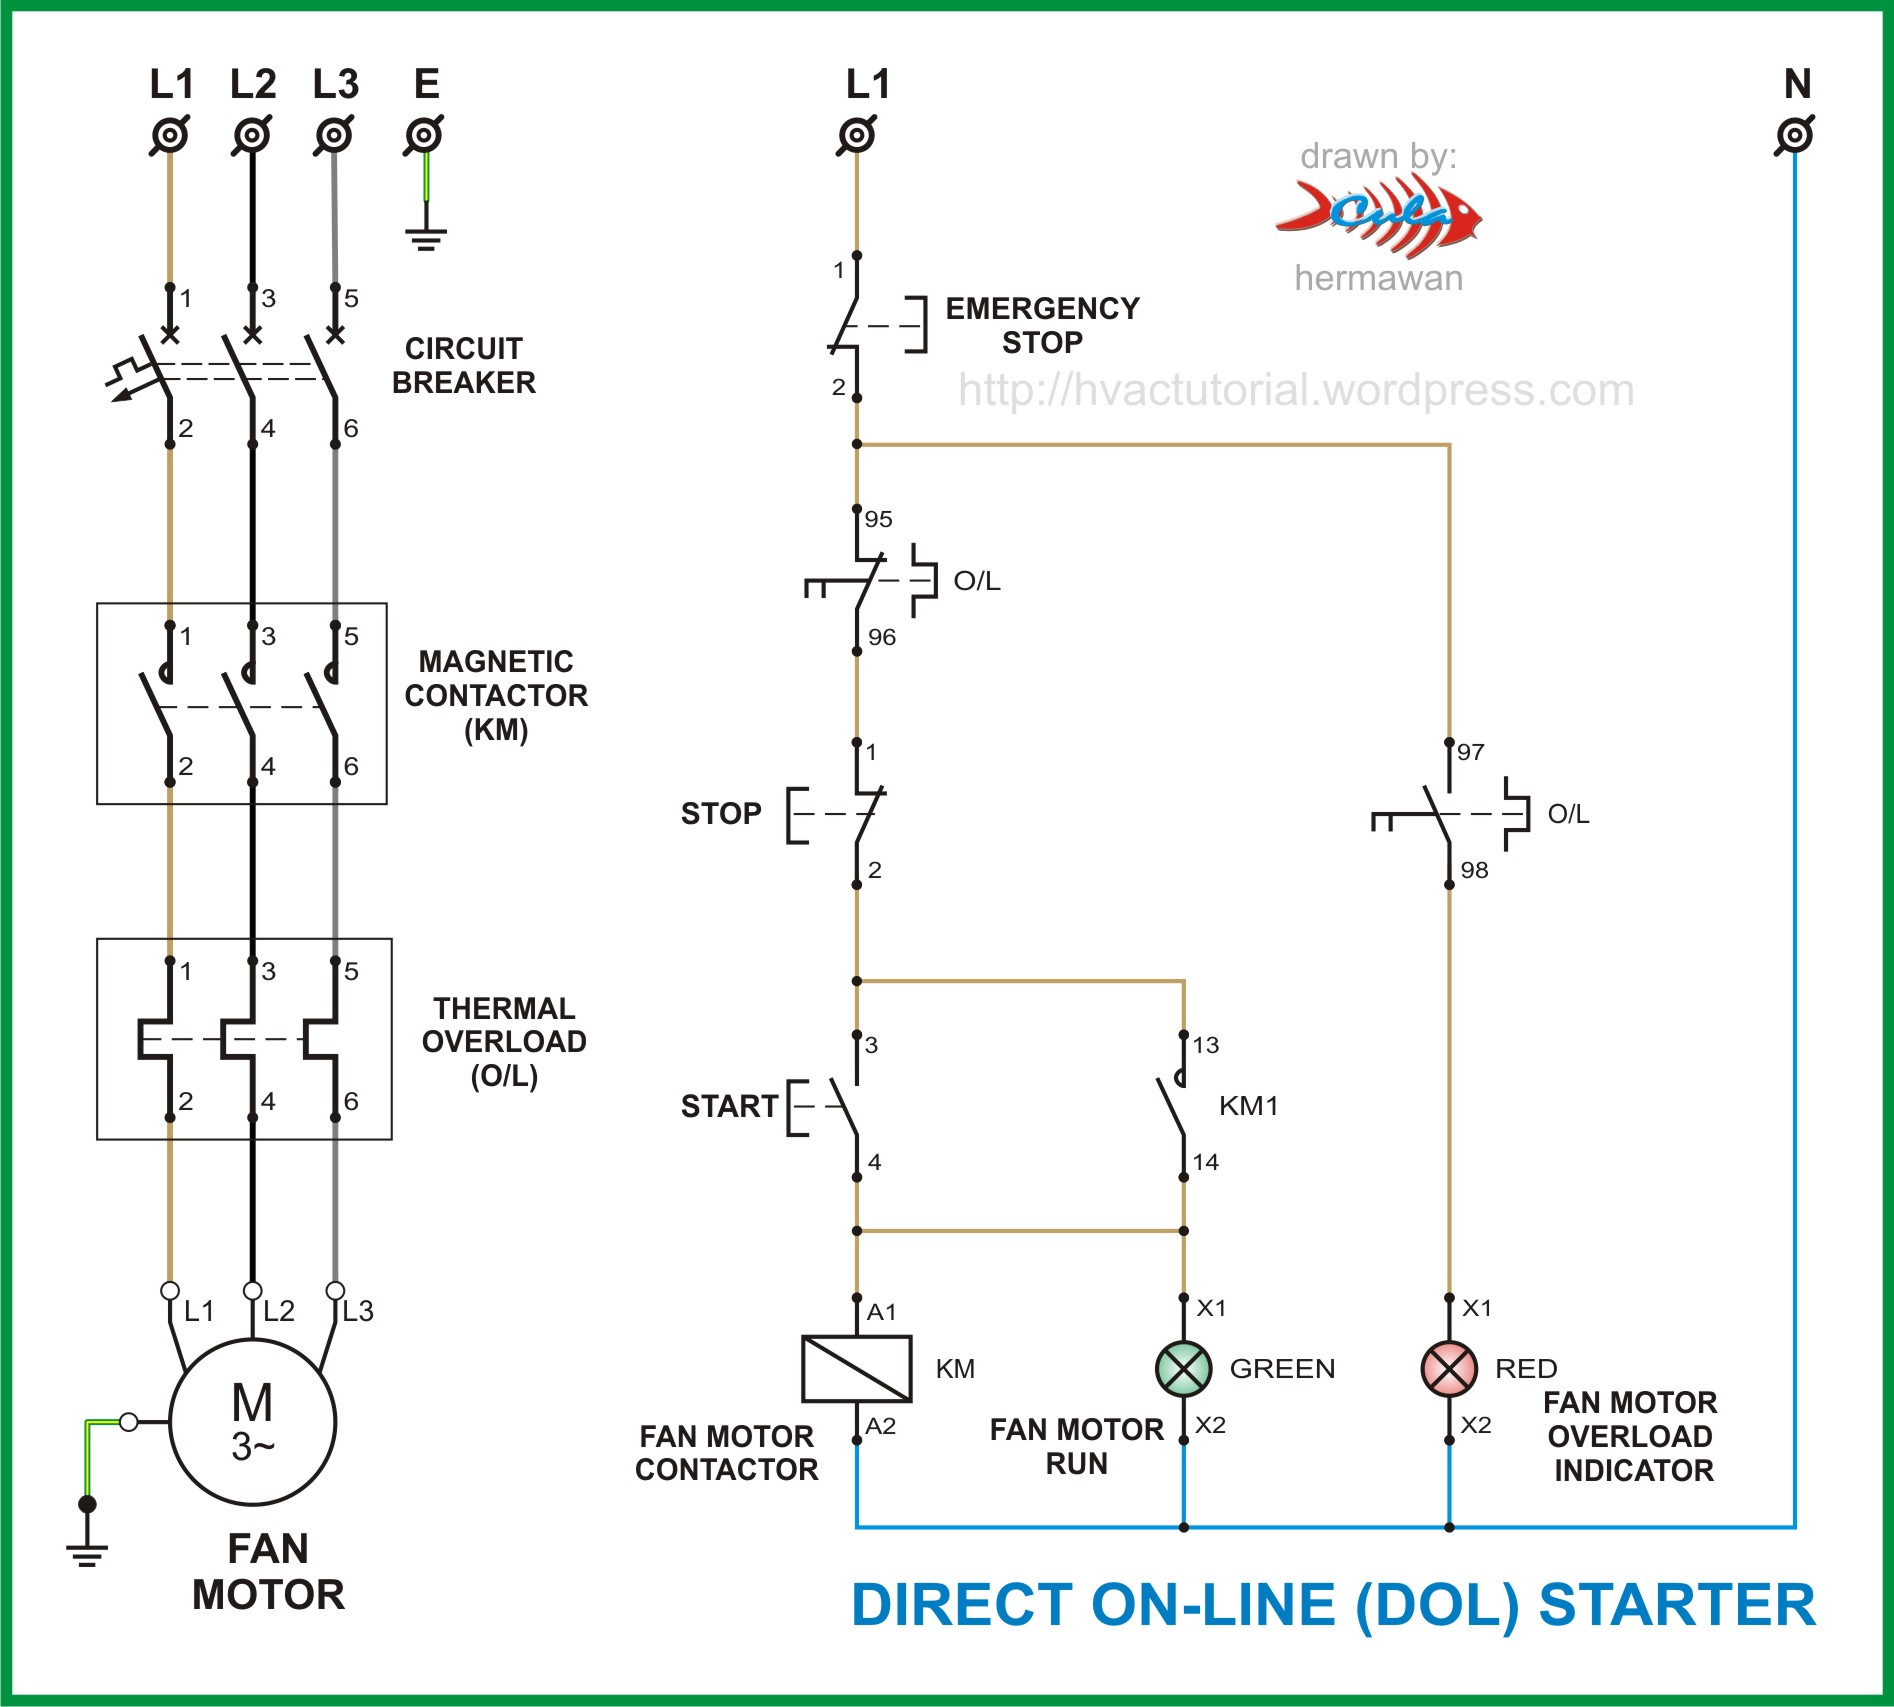 3 phase dol starter circuit diagram images starter diagram kwikee step wiring diagram 28 furthermore motor starter